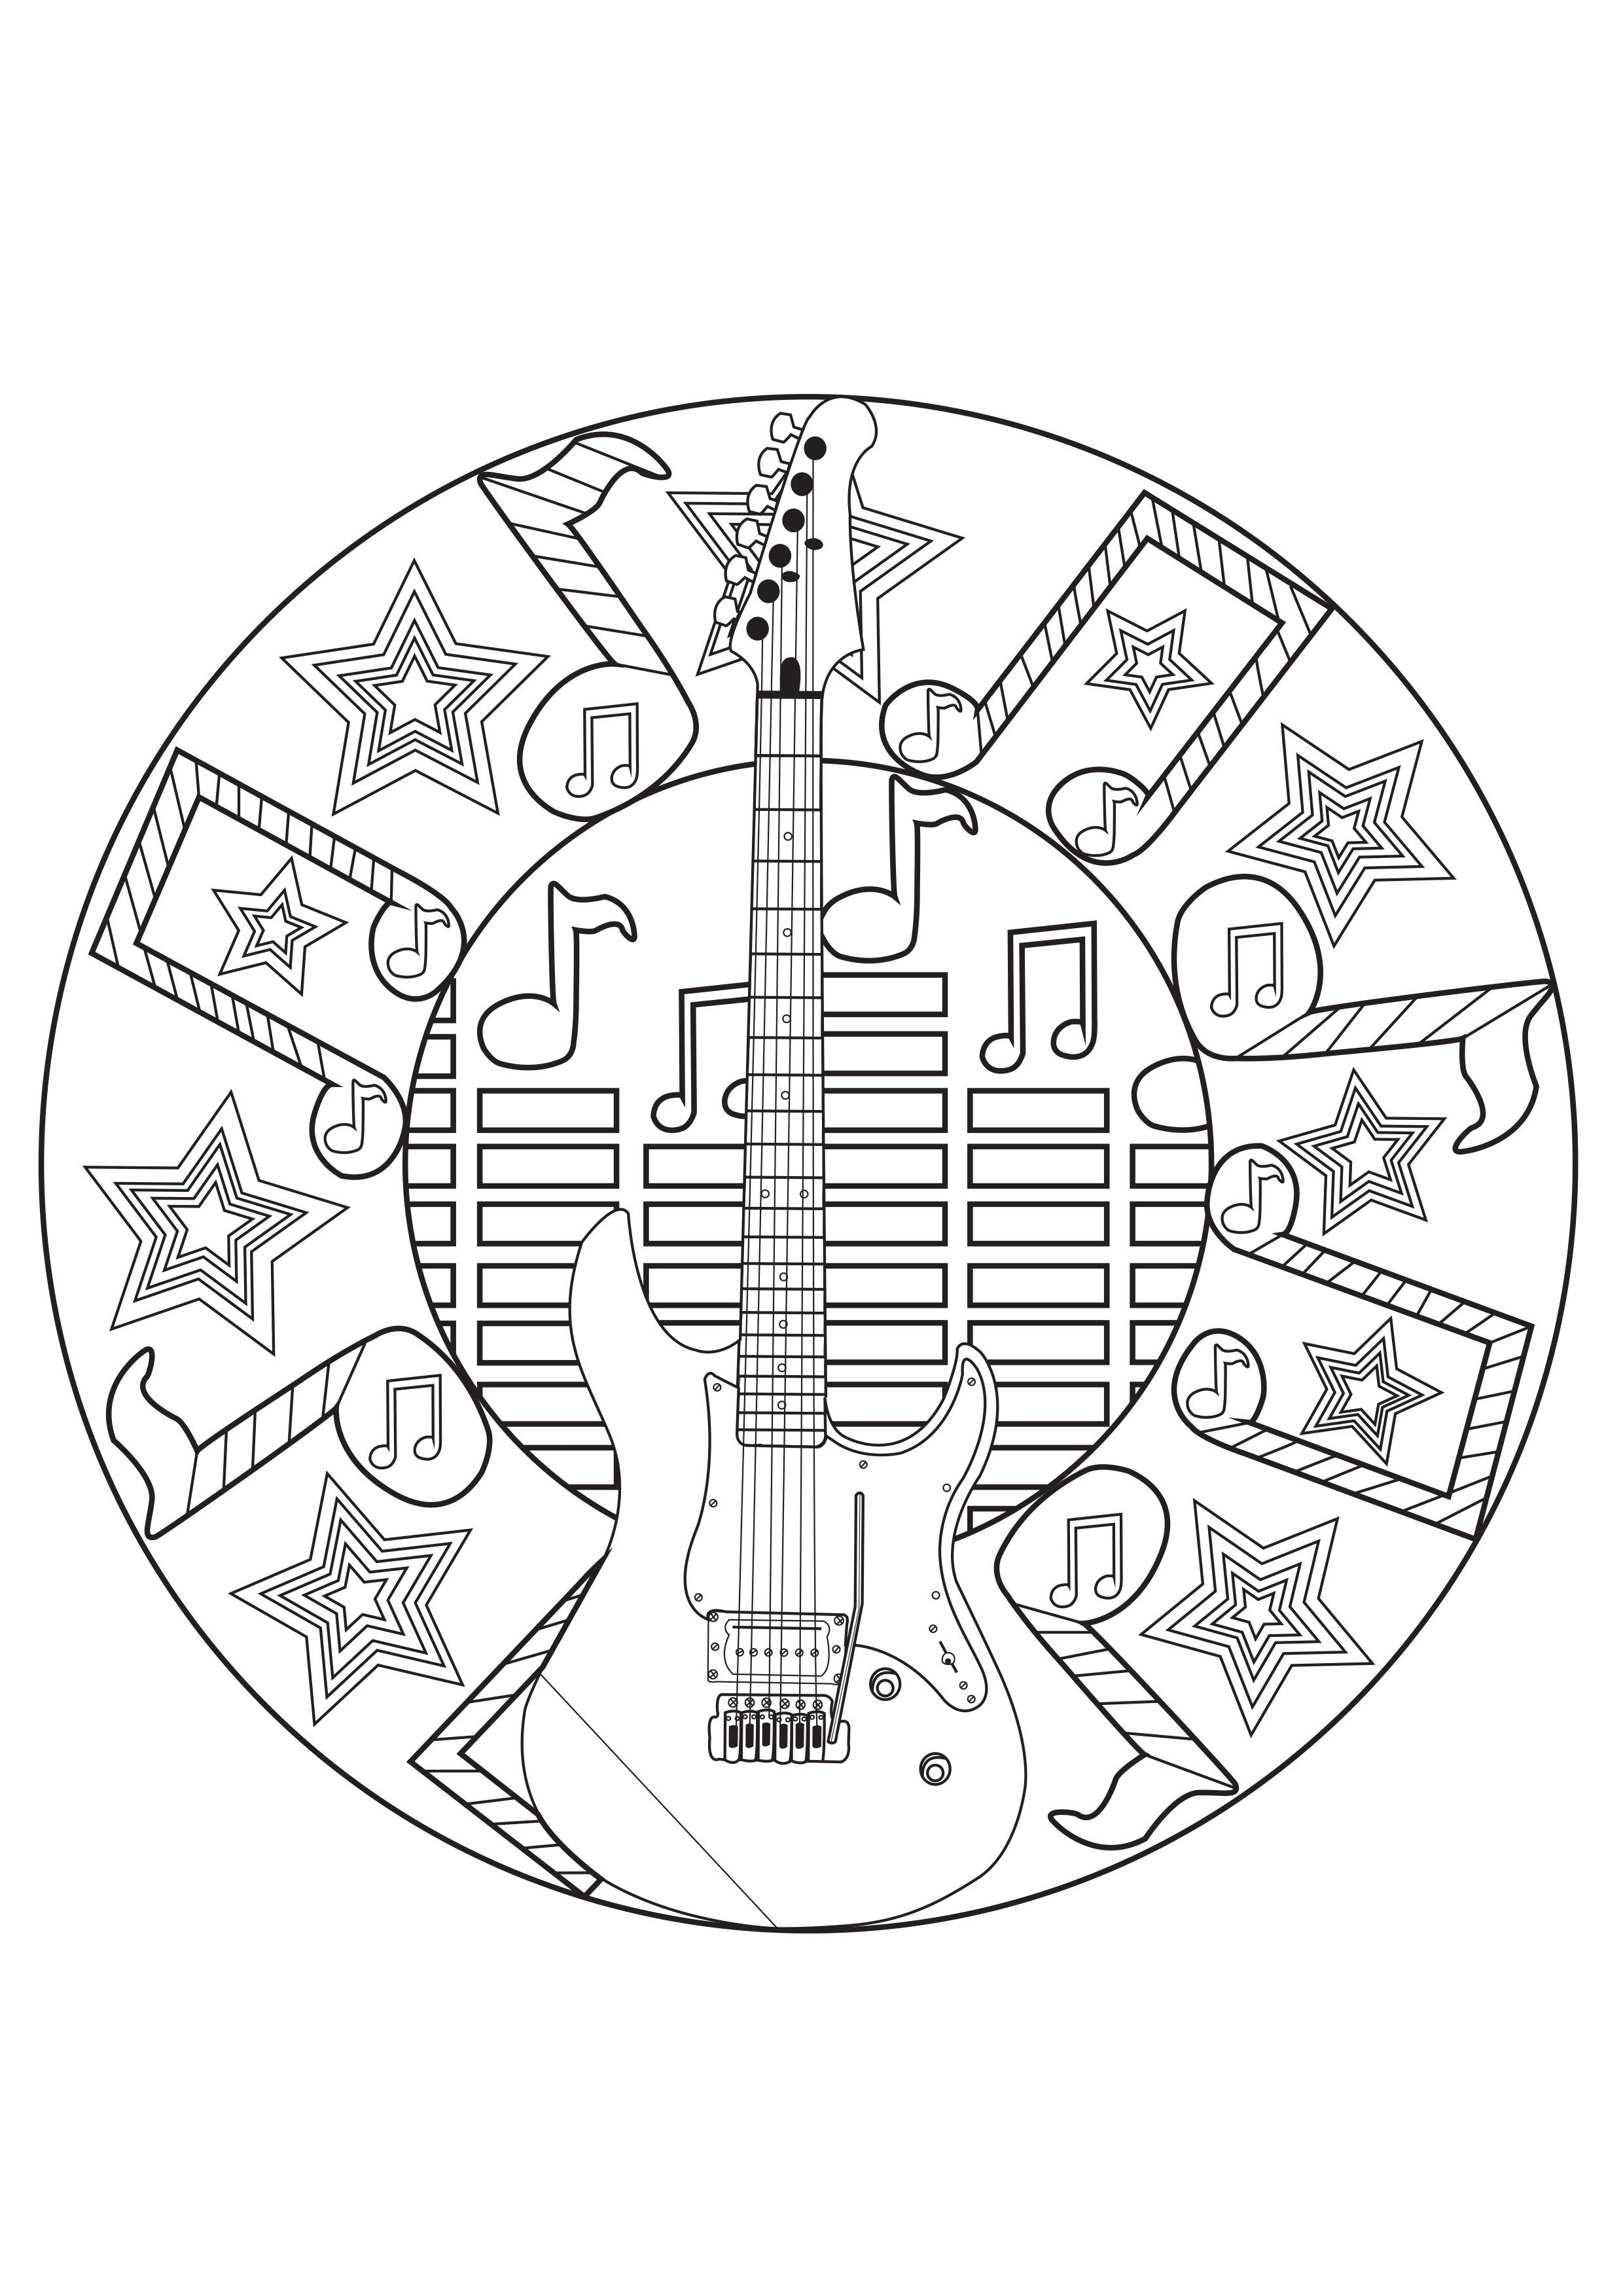 advanced music coloring pages - photo#36